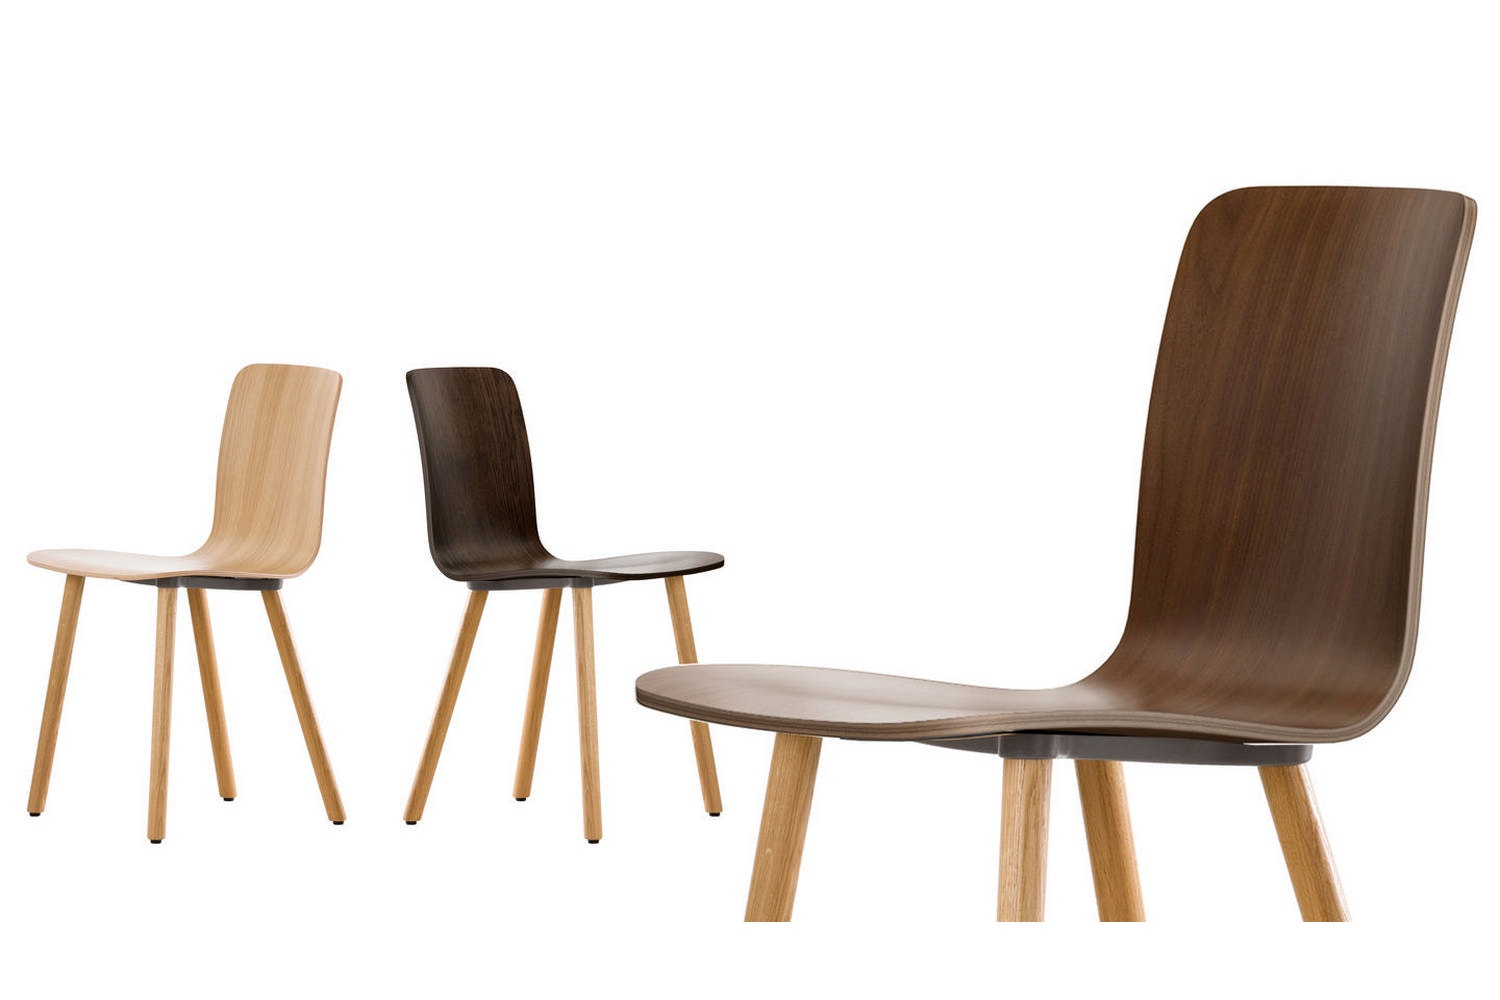 HAL Ply Wood Chair by Jasper Morrison for Vitra